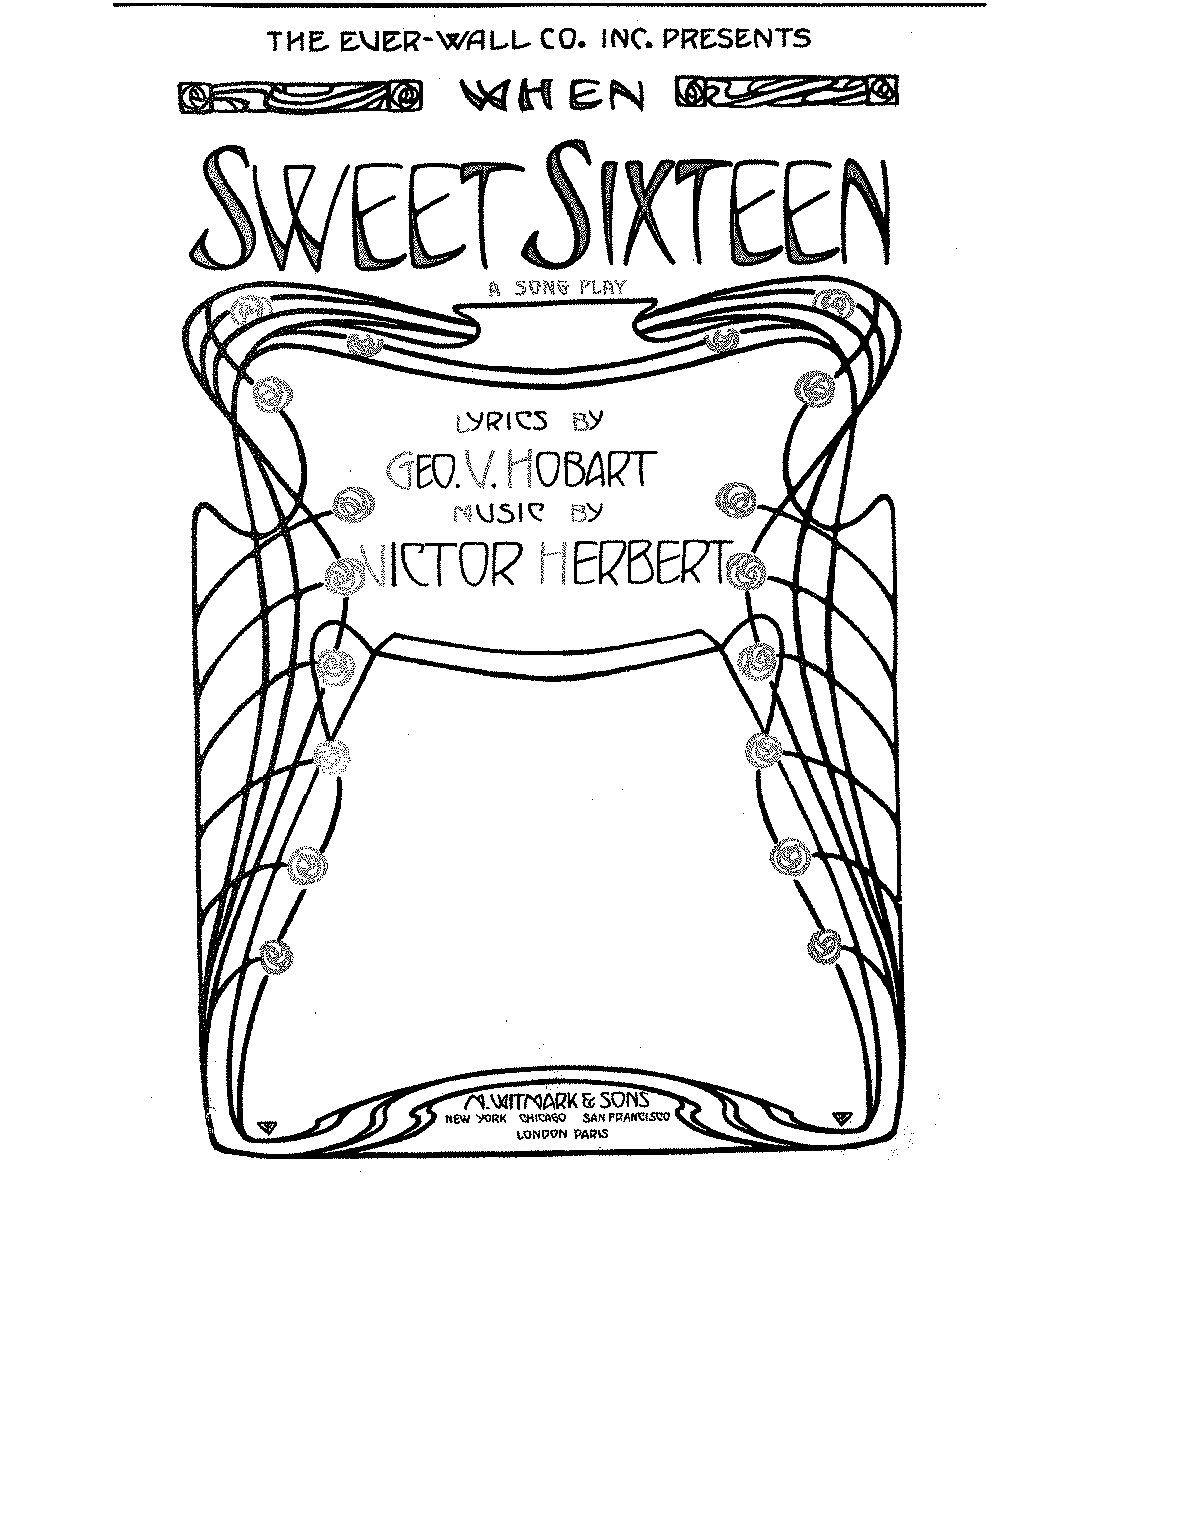 Herbert - When Sweet Sixteen (vocal score).pdf